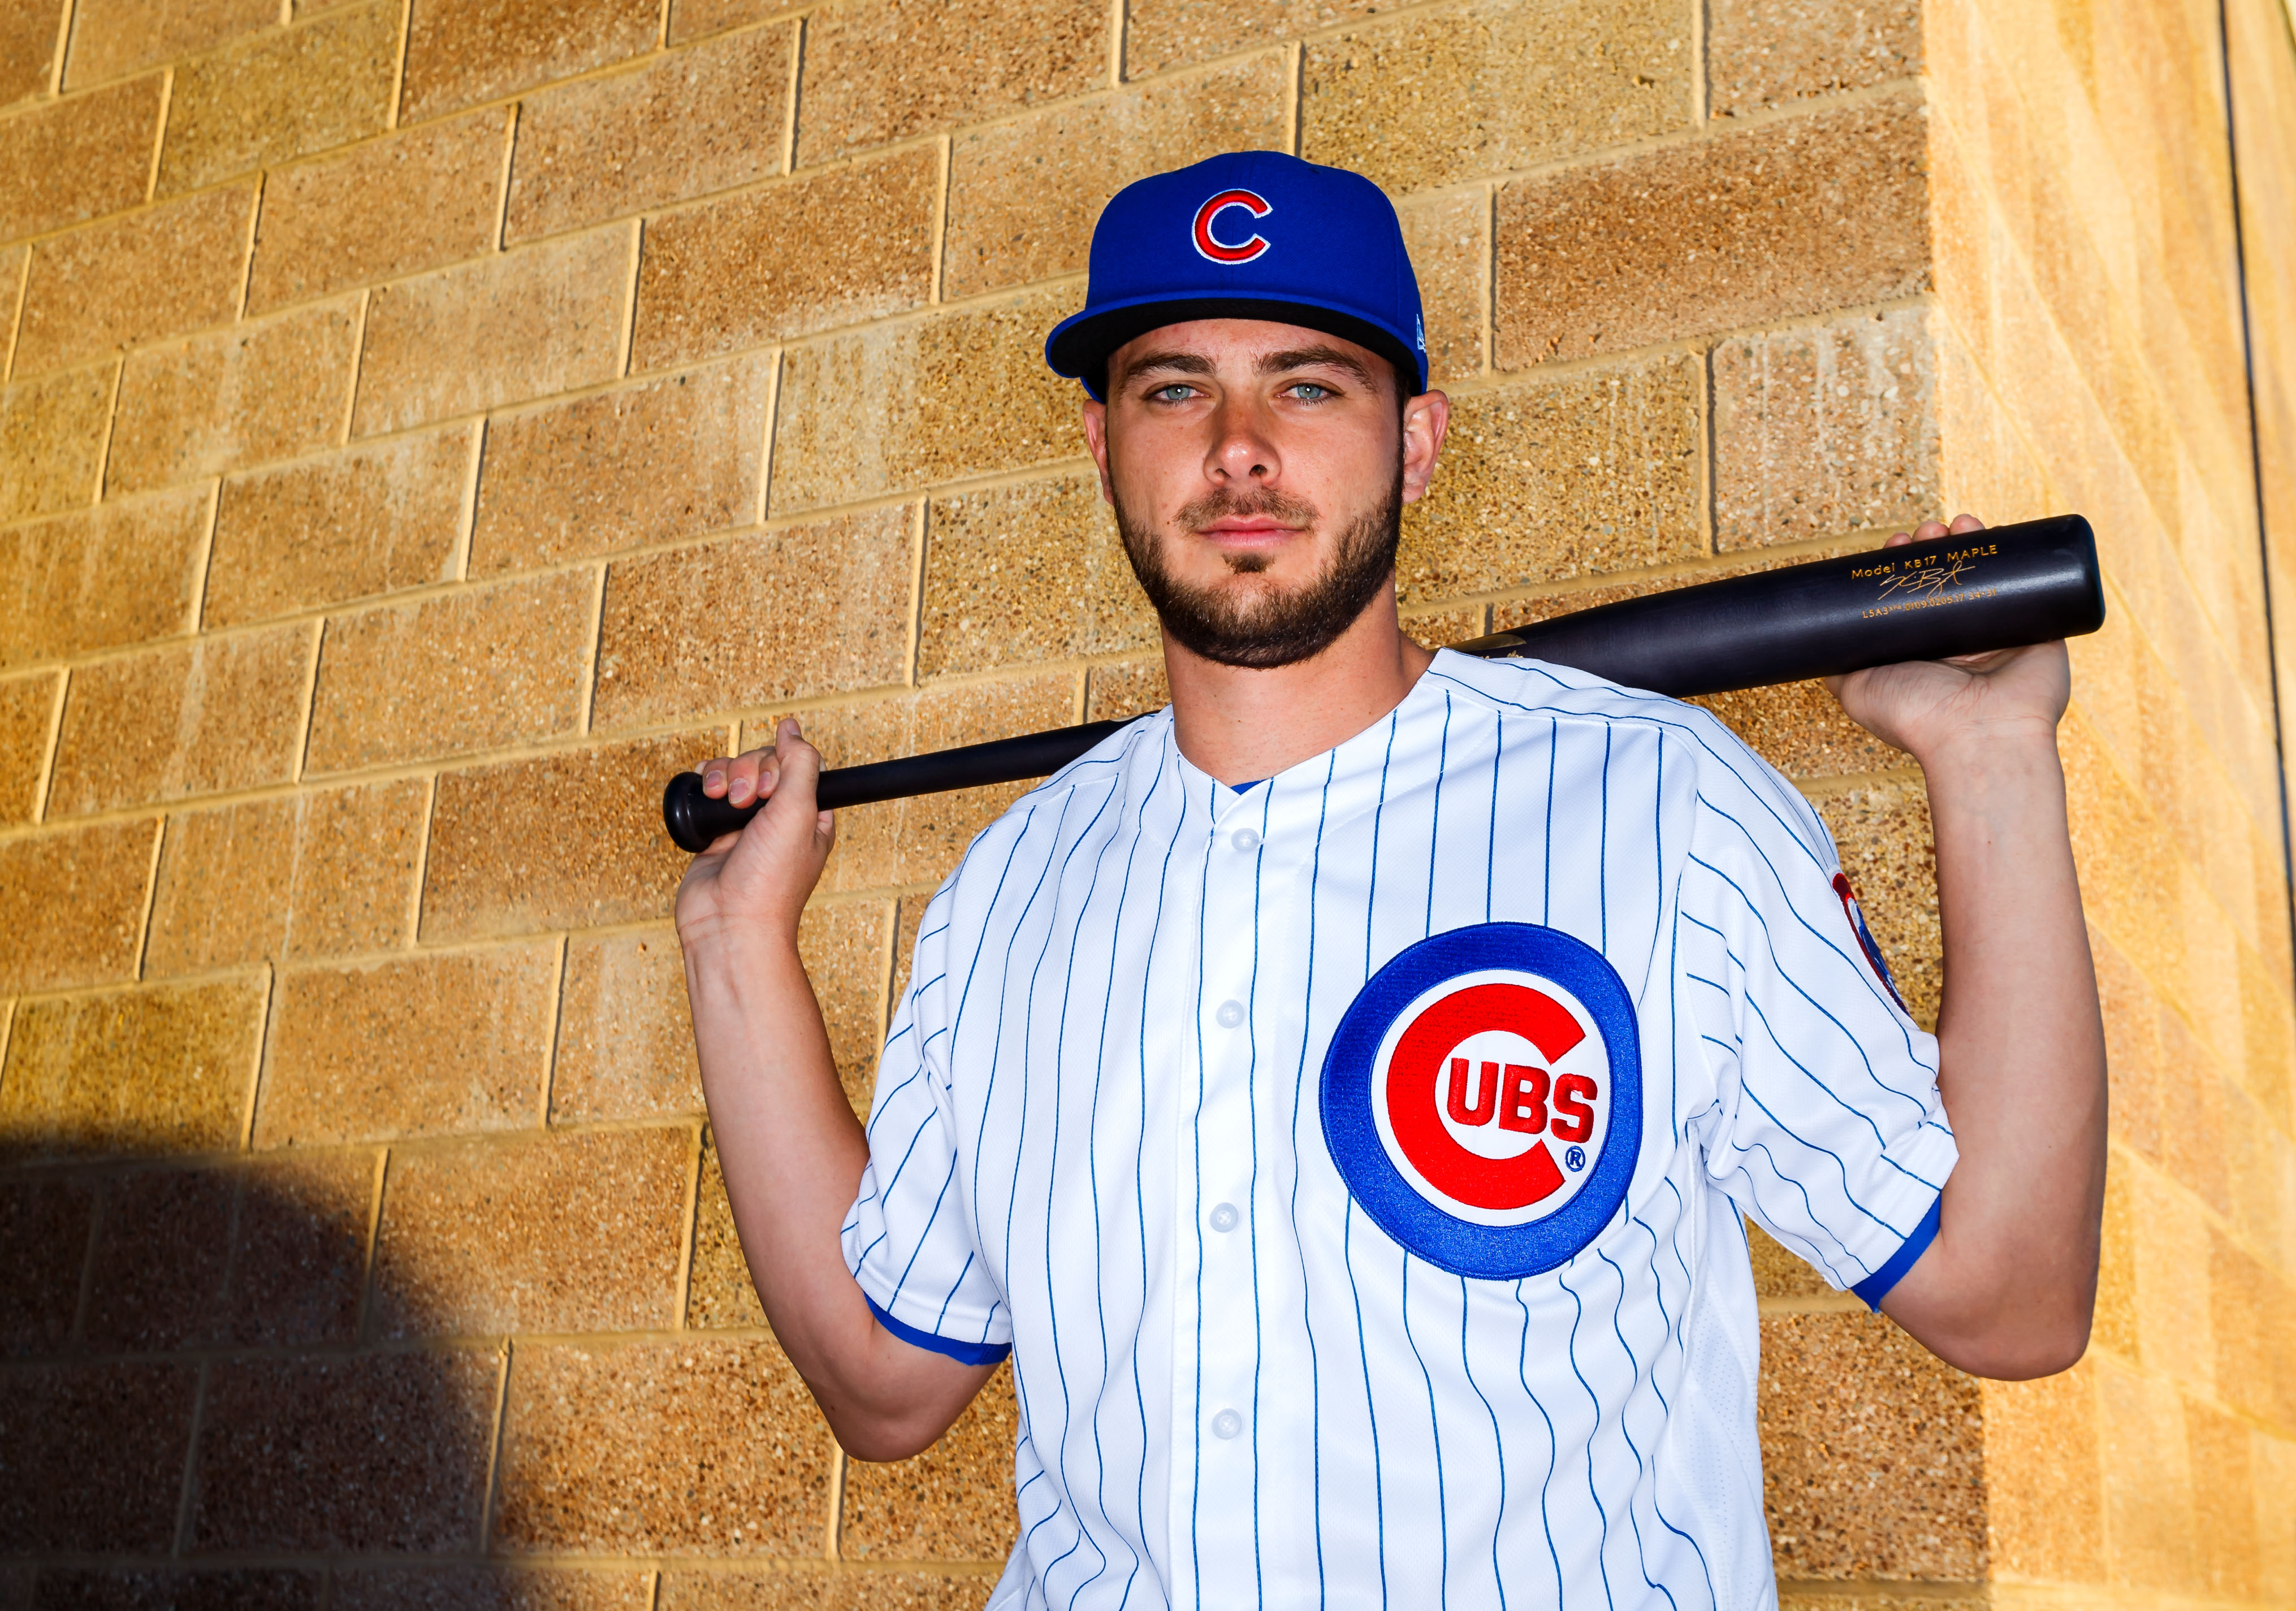 Feb 21, 2017; Mesa, AZ, USA; Chicago Cubs third baseman Kris Bryant poses for a portrait during photo day at Sloan Park. Mandatory Credit: Mark J. Rebilas-USA TODAY Sports